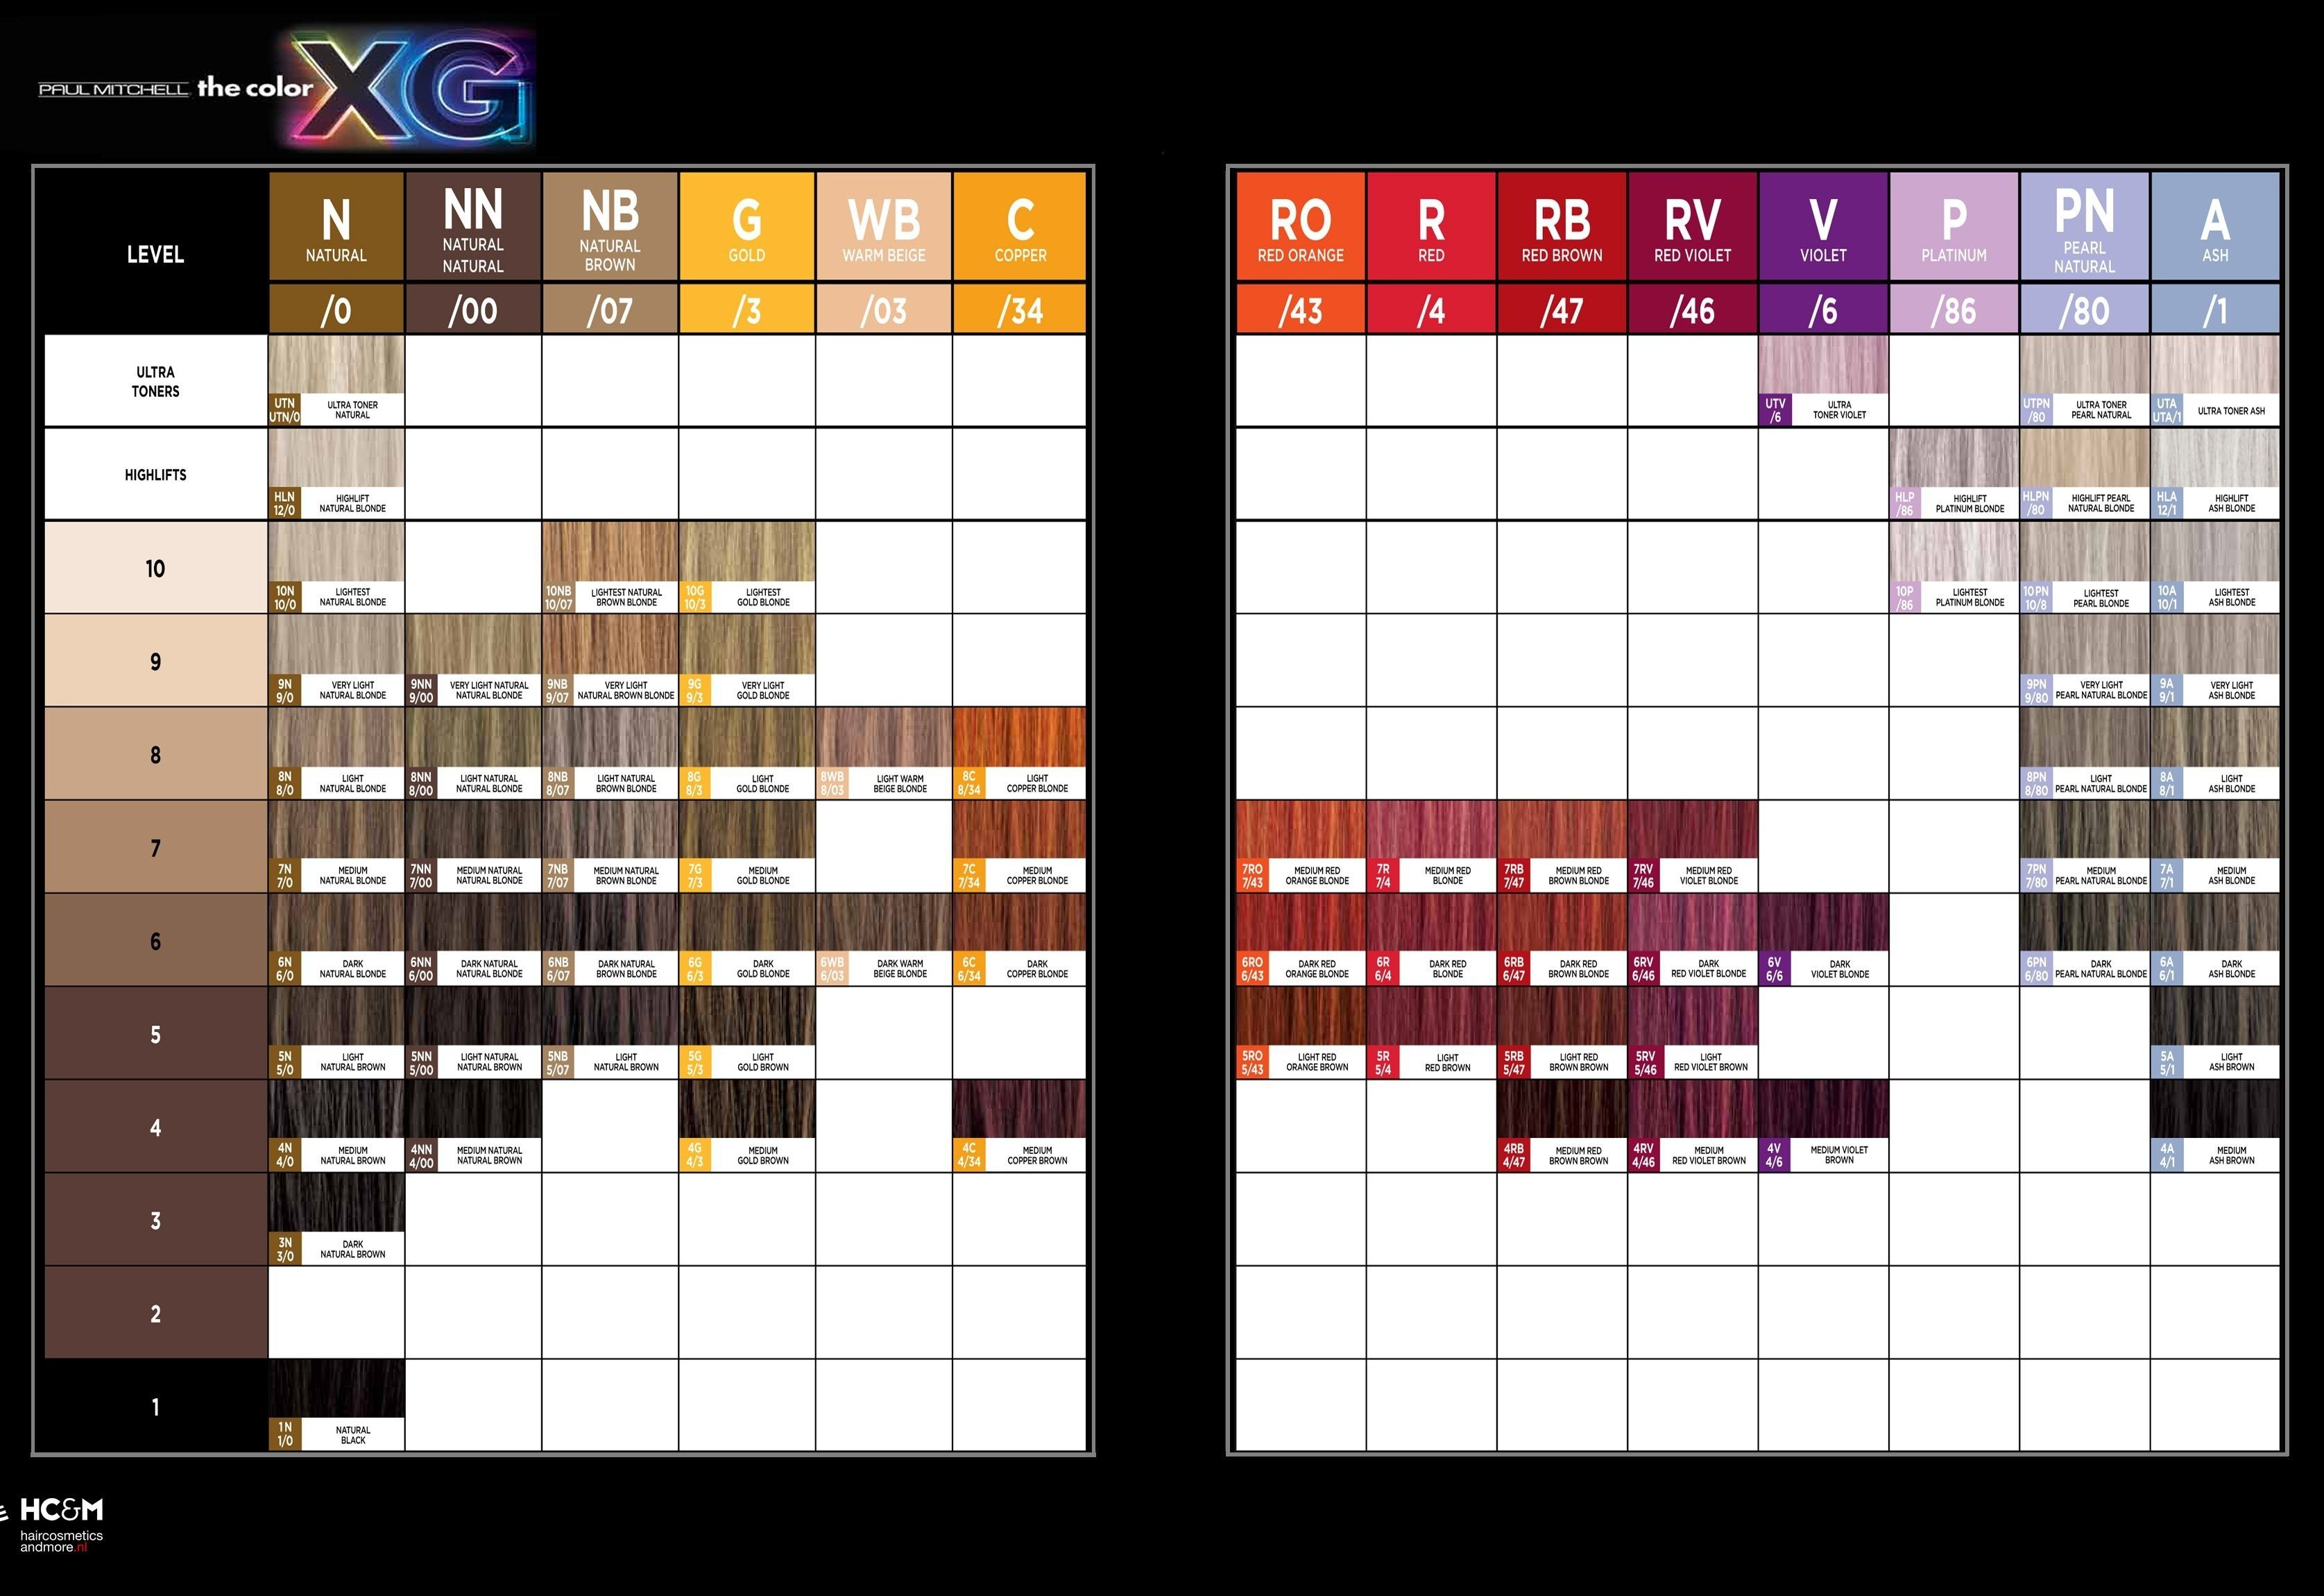 Redken And Kenra Color Conversion Chart Pravana Color Chart Pdf Paul Mitchell Color P In 2020 Paul Mitchell Color Chart Paul Mitchell Color Paul Mitchell Hair Products